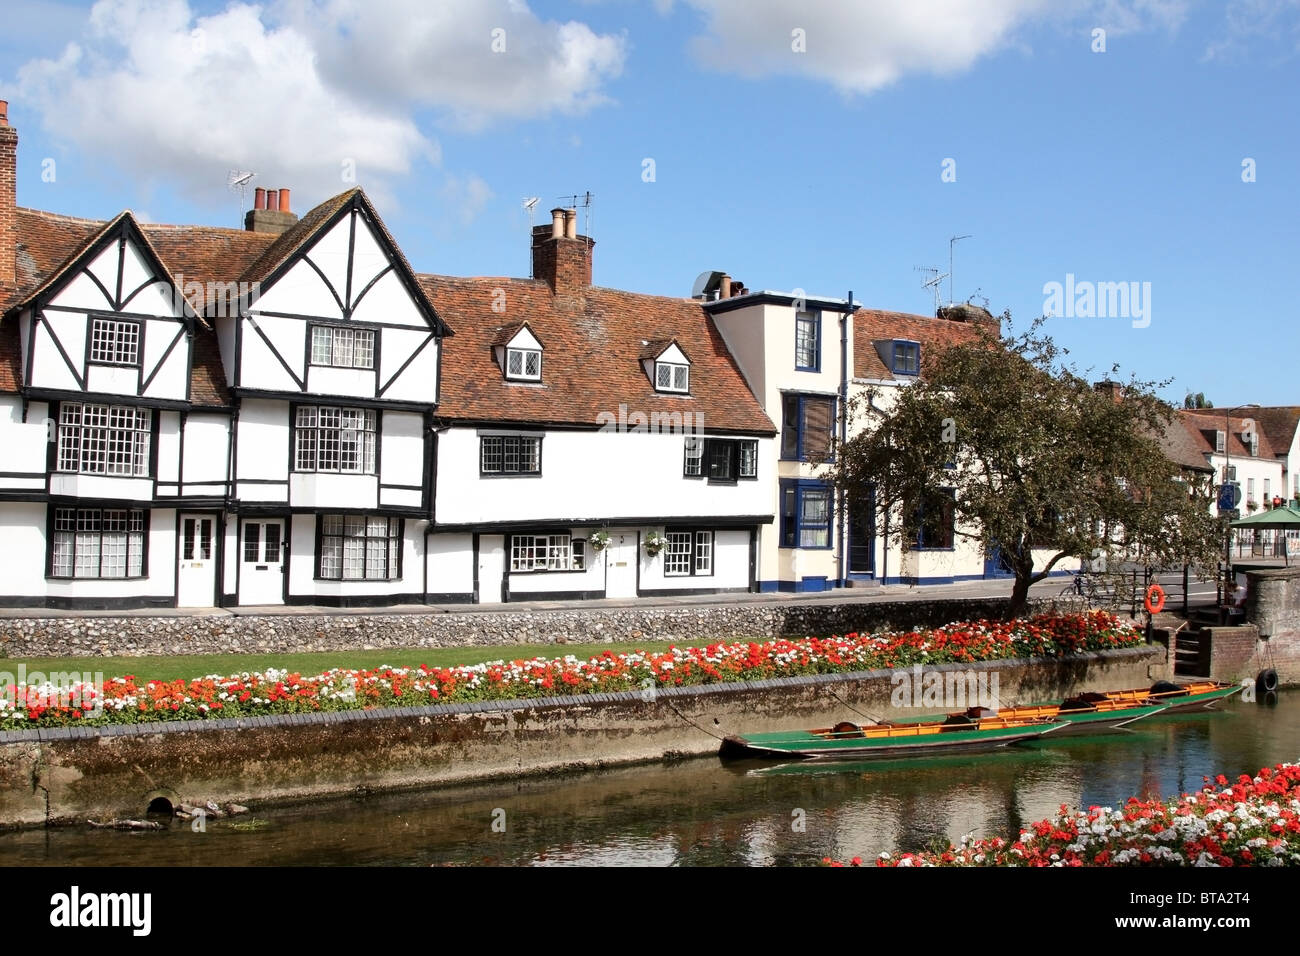 A row of terraced Tudor buildings overlooking the Westgate Gardens and the River Stour in Canterbury, Kent, UK - Stock Image